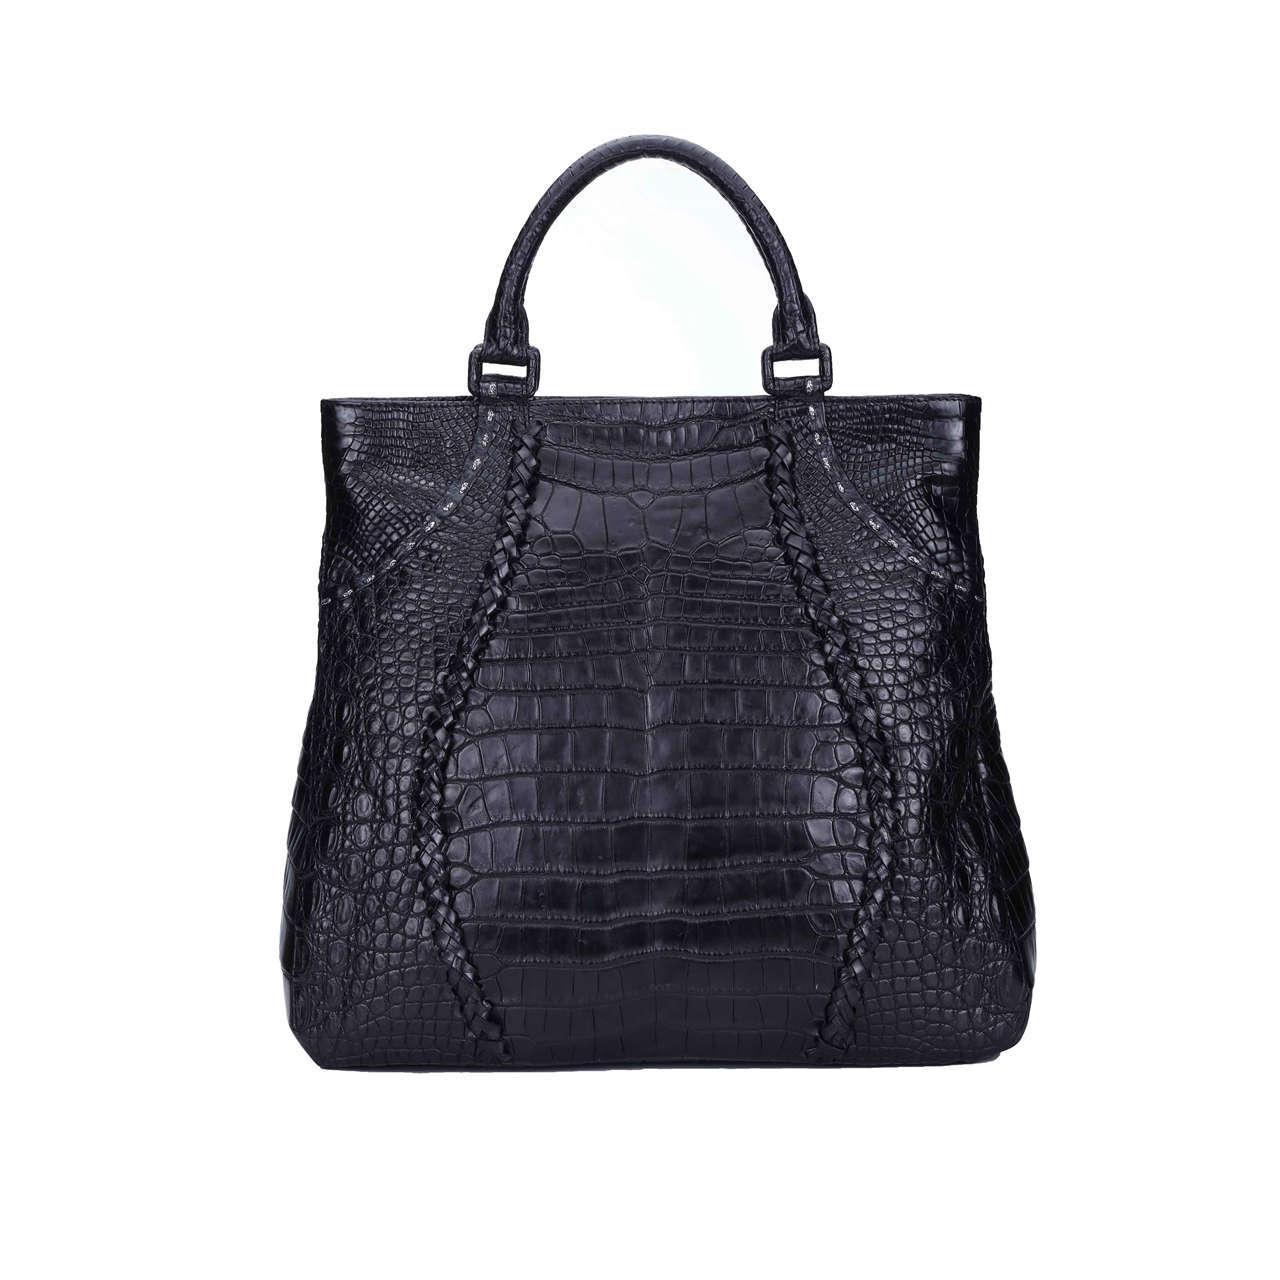 crocodile fashion handbags duffle for ladies-2